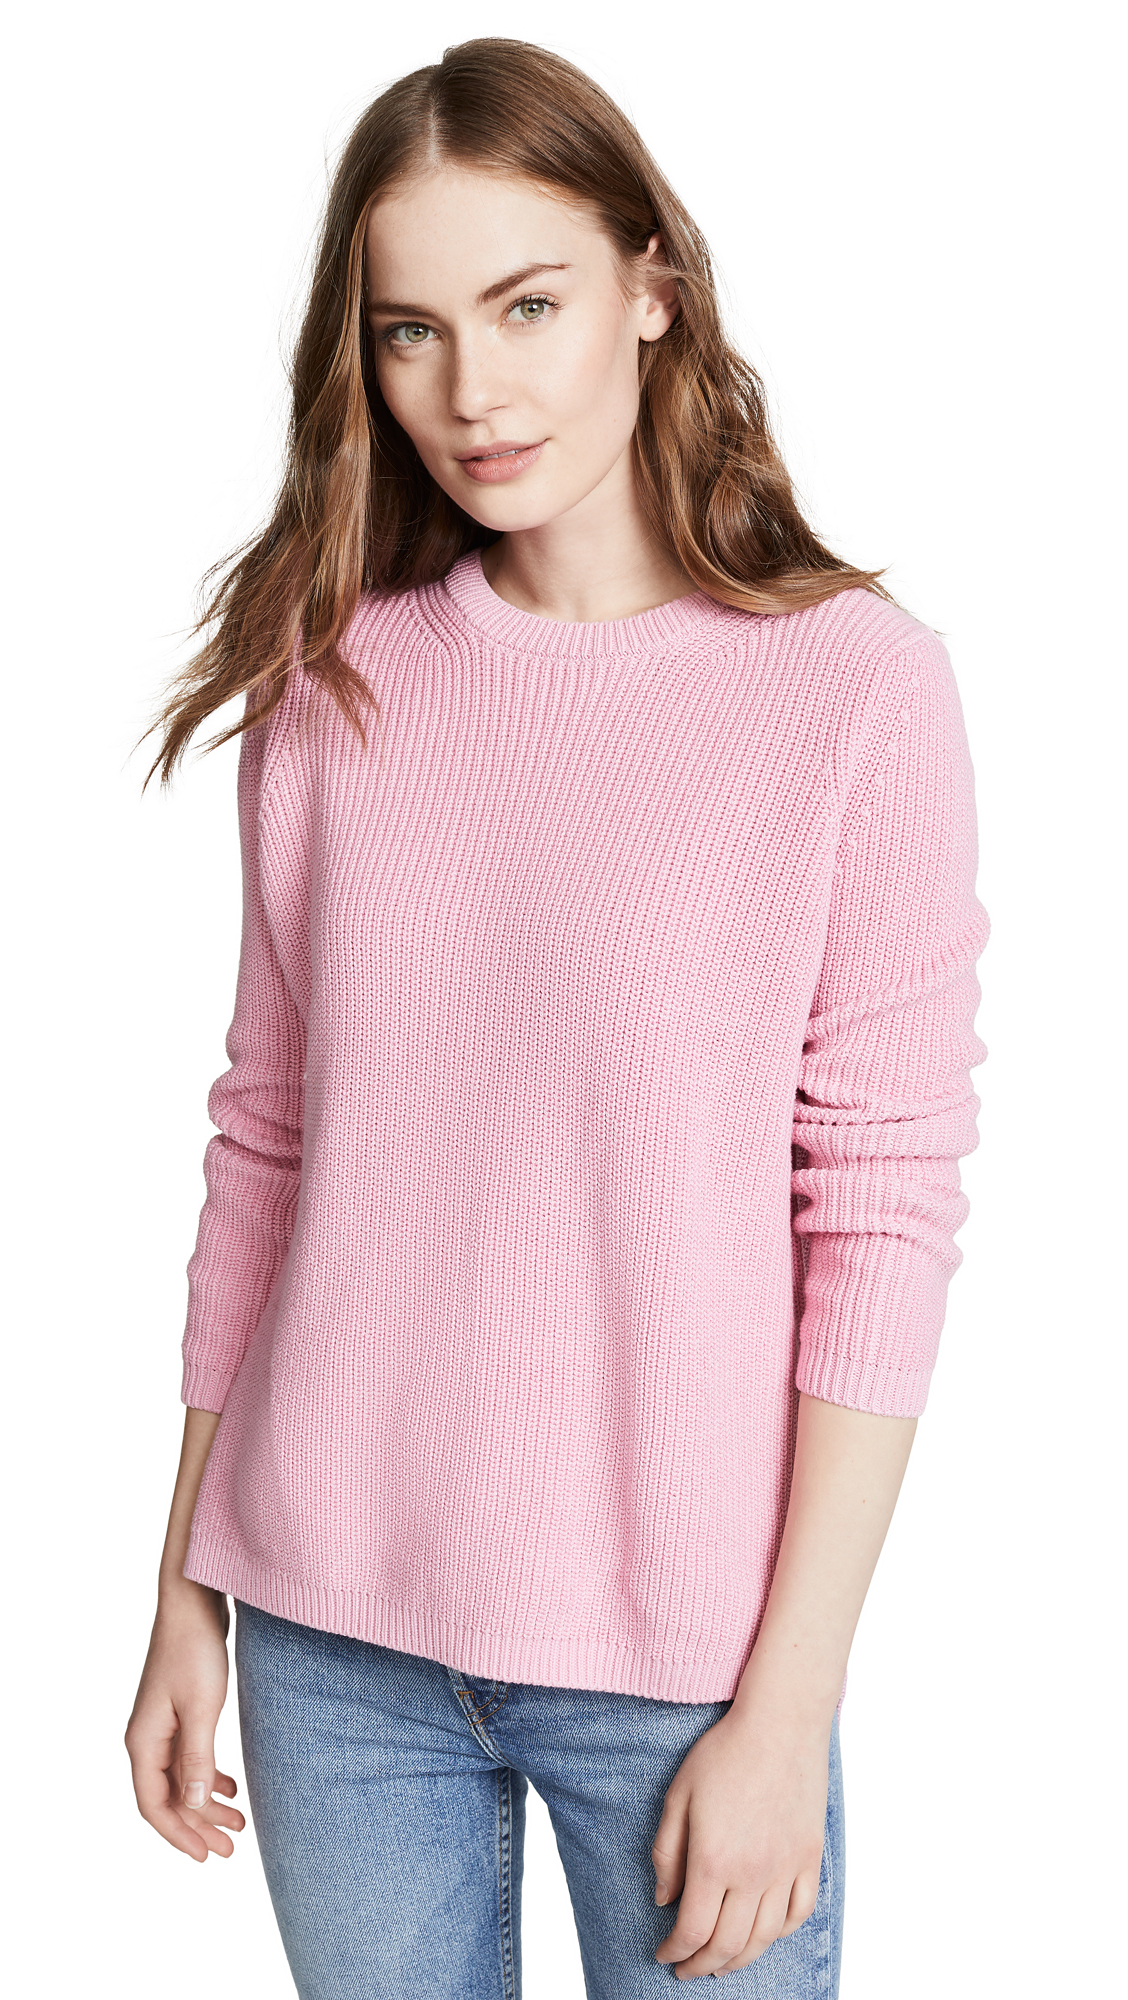 525 AMERICA Shaker Crew Sweater in Neutrals